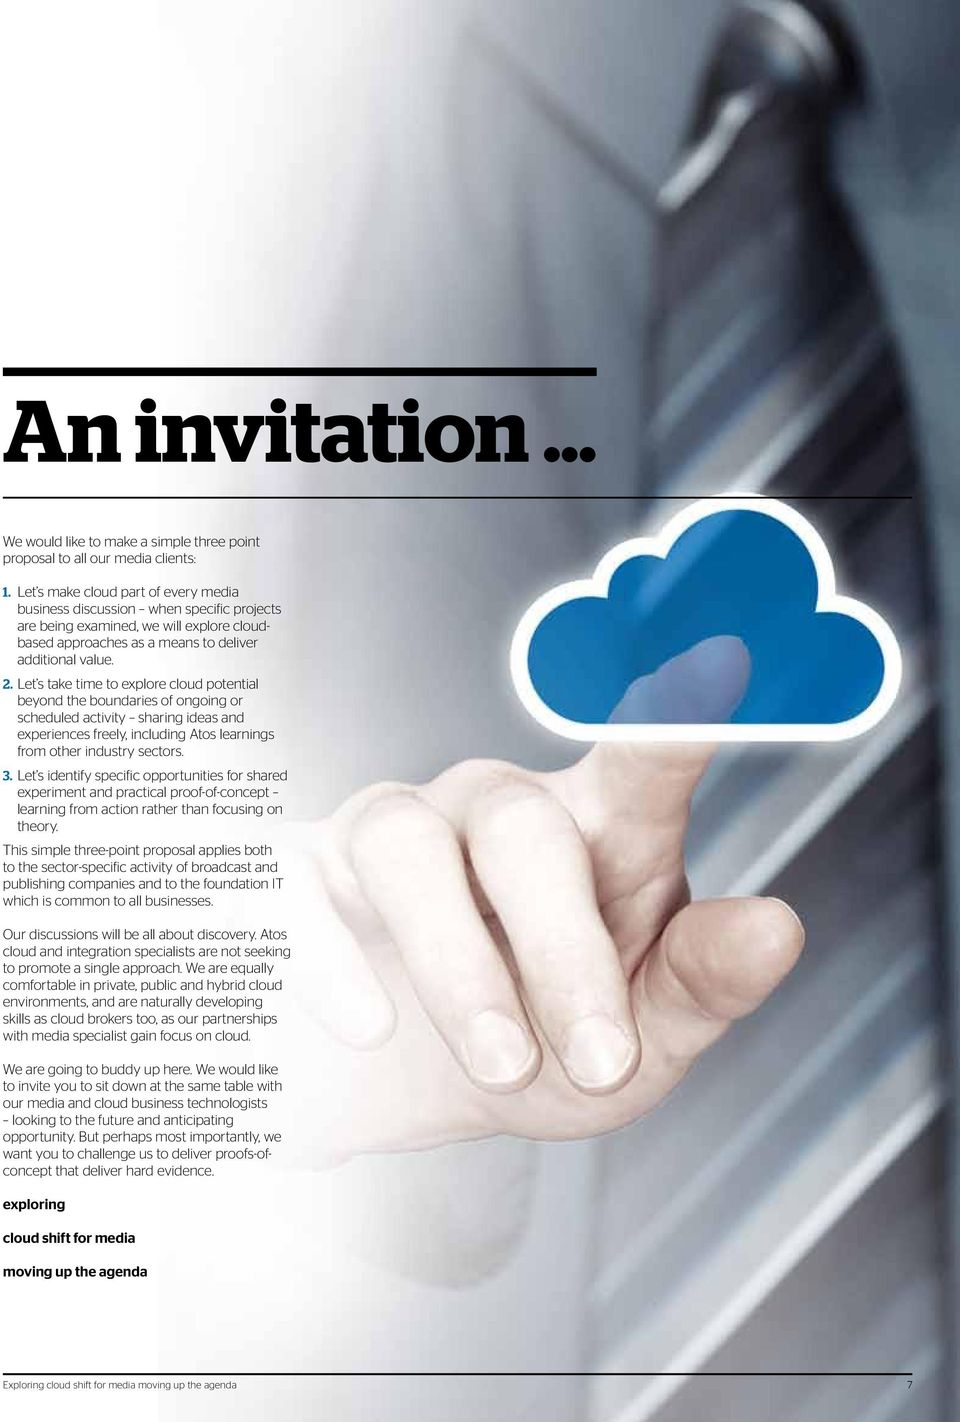 Let s take time to explore cloud potential beyond the boundaries of ongoing or scheduled activity sharing ideas and experiences freely, including Atos learnings from other industry sectors. 3.